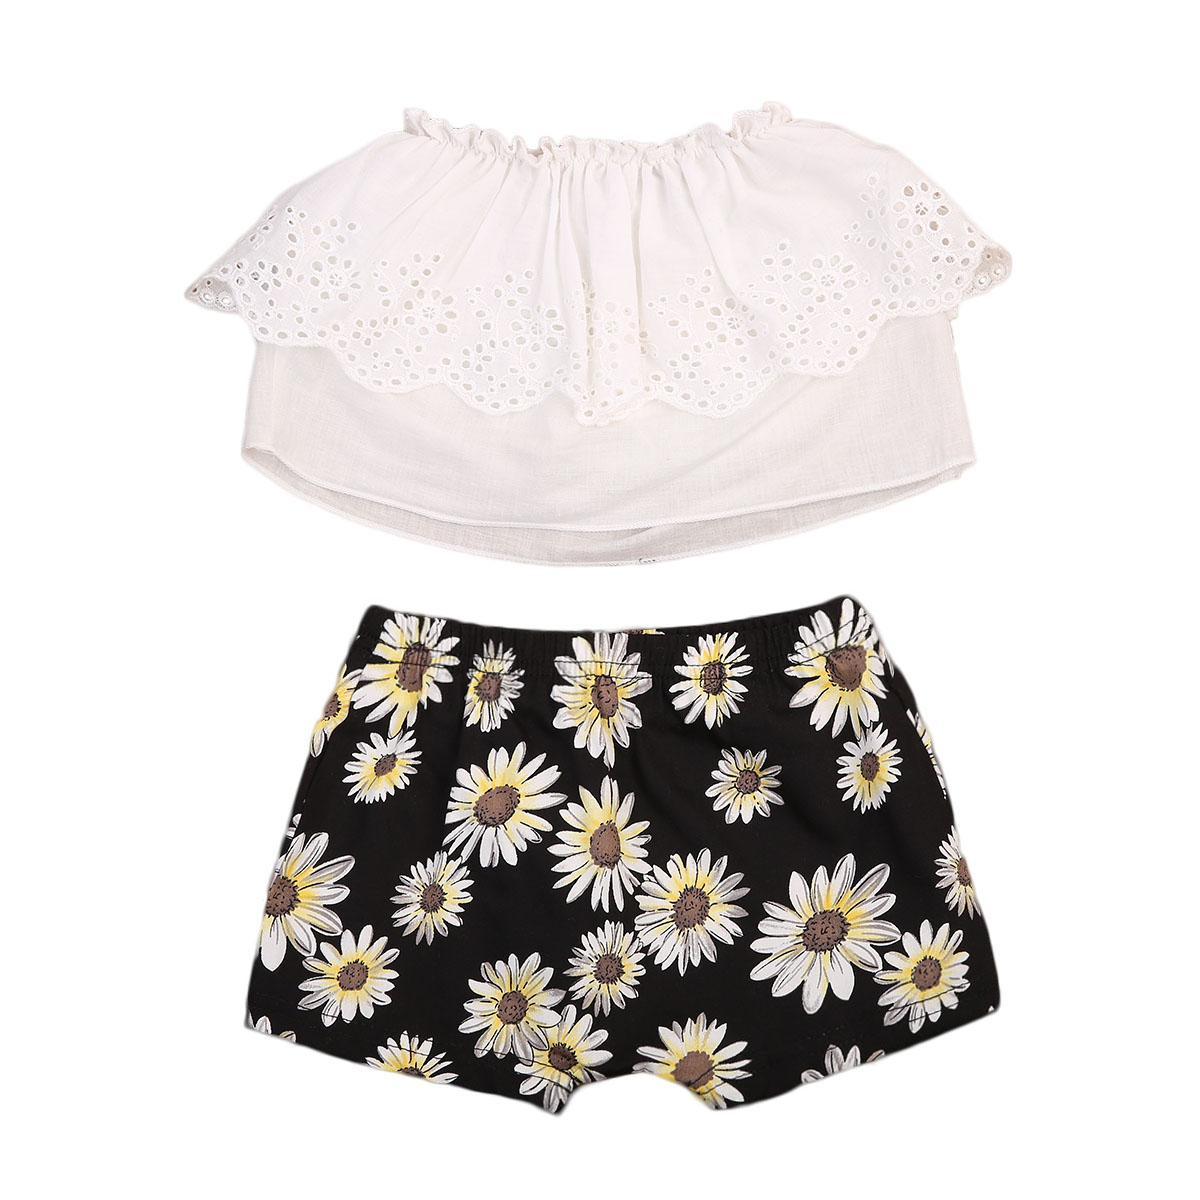 Newborn Infant Baby Girls Clothes Off Shoulder Lace Tops Sunflower Shorts 2Pcs Outfit Summer Cute Baby Sets